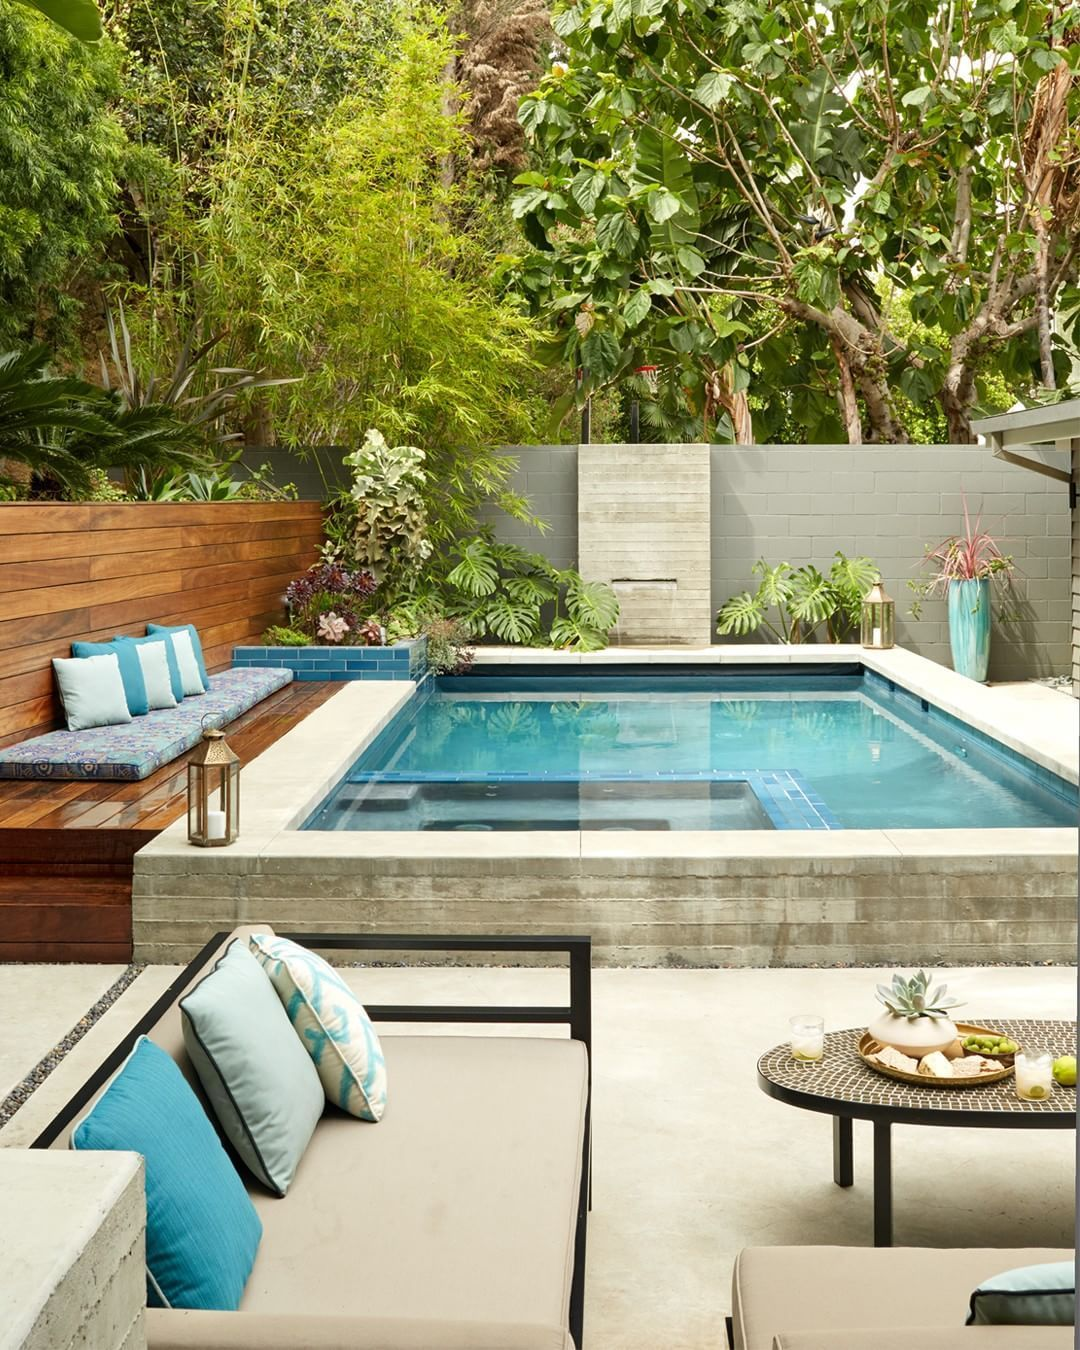 If you couldn't already tell, this backyard paradise was ... Ideas Small Backyard Paradise on outdoor living space ideas, bedroom paradise ideas, koi pond ideas, vaulted ceilings ideas, swimming pool paradise ideas, backyard landscaping, outdoor tiki bar ideas, landscaping ideas, tiered deck ideas, fireplace ideas,